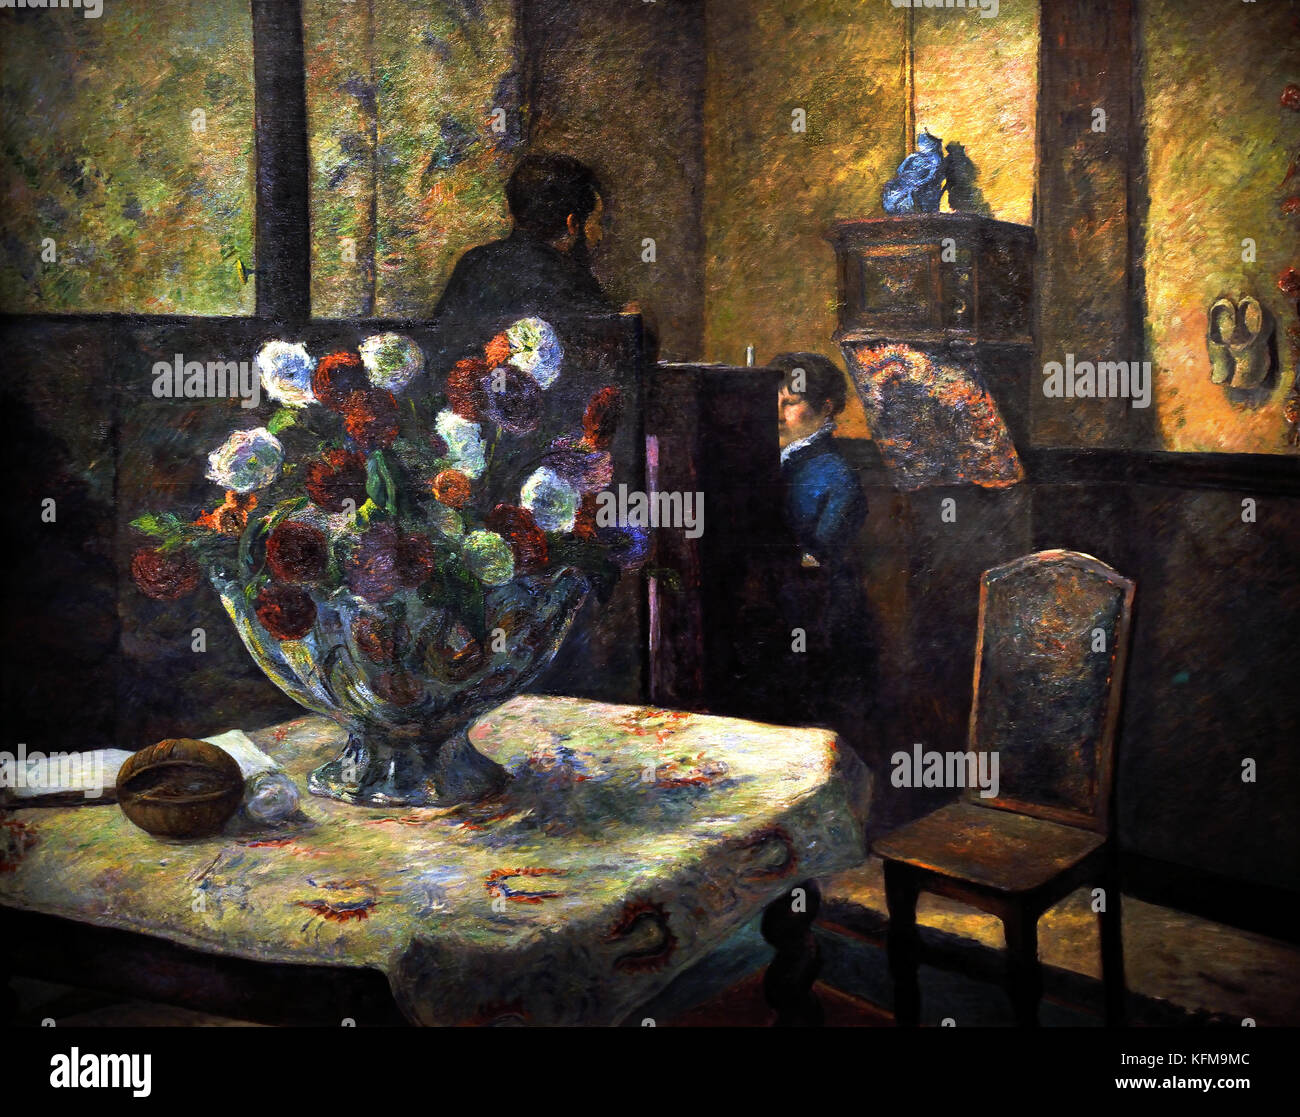 Fleurs, Nature Morte - Interieur du Peintre , Rue Carcel - Flowers, Still Life - Interior of the Painter, Carcel - Stock Image